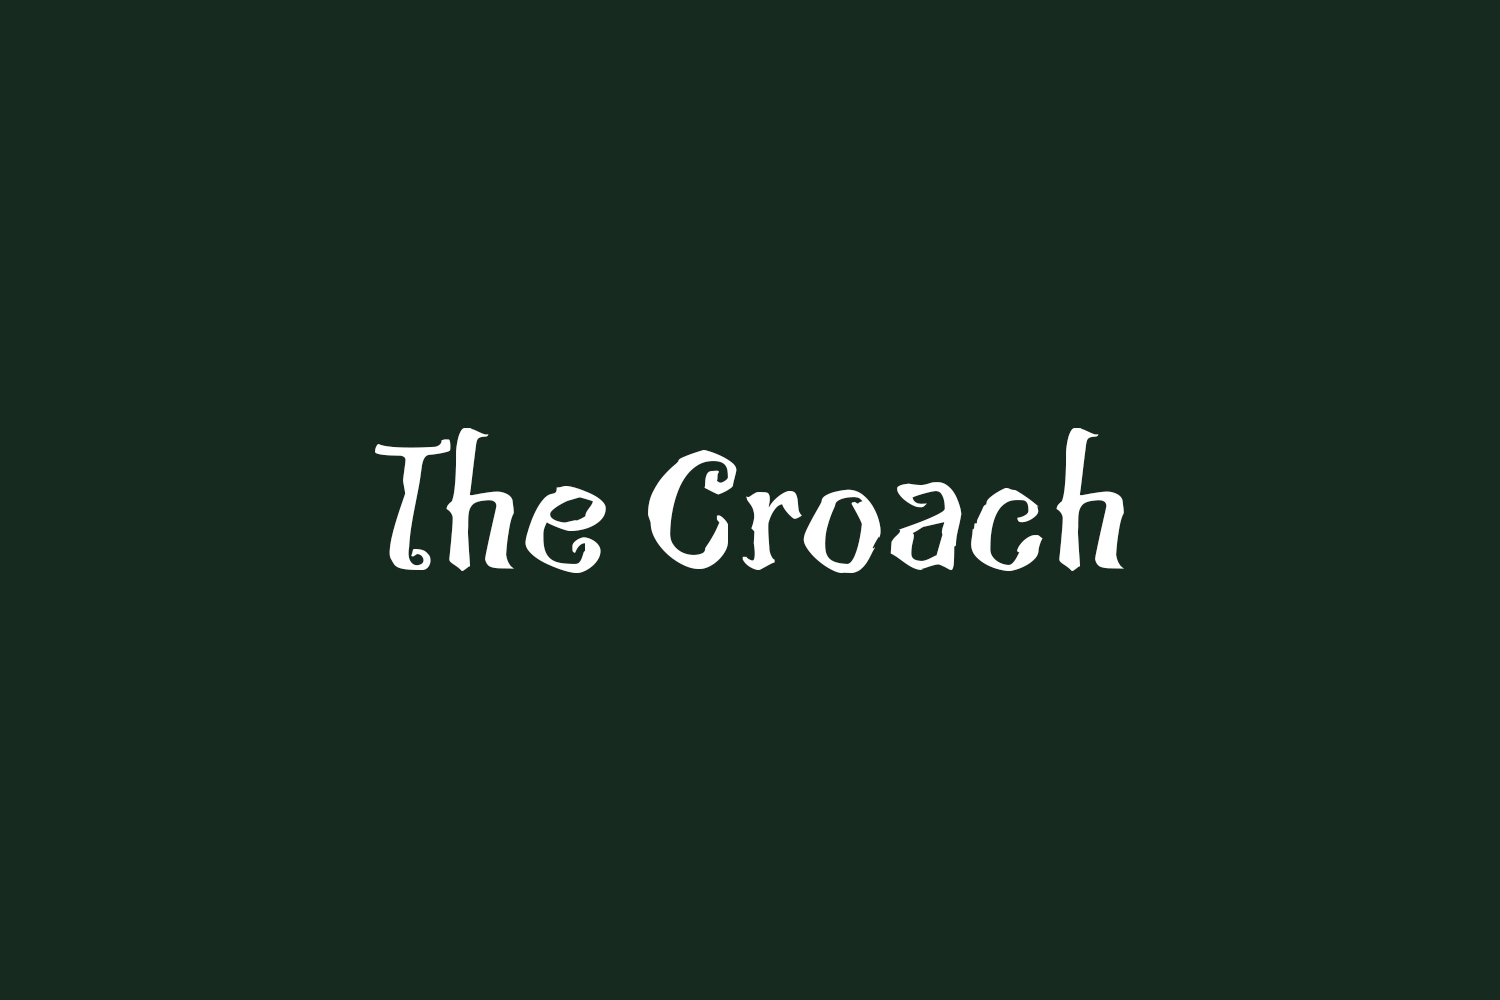 The Croach Free Font